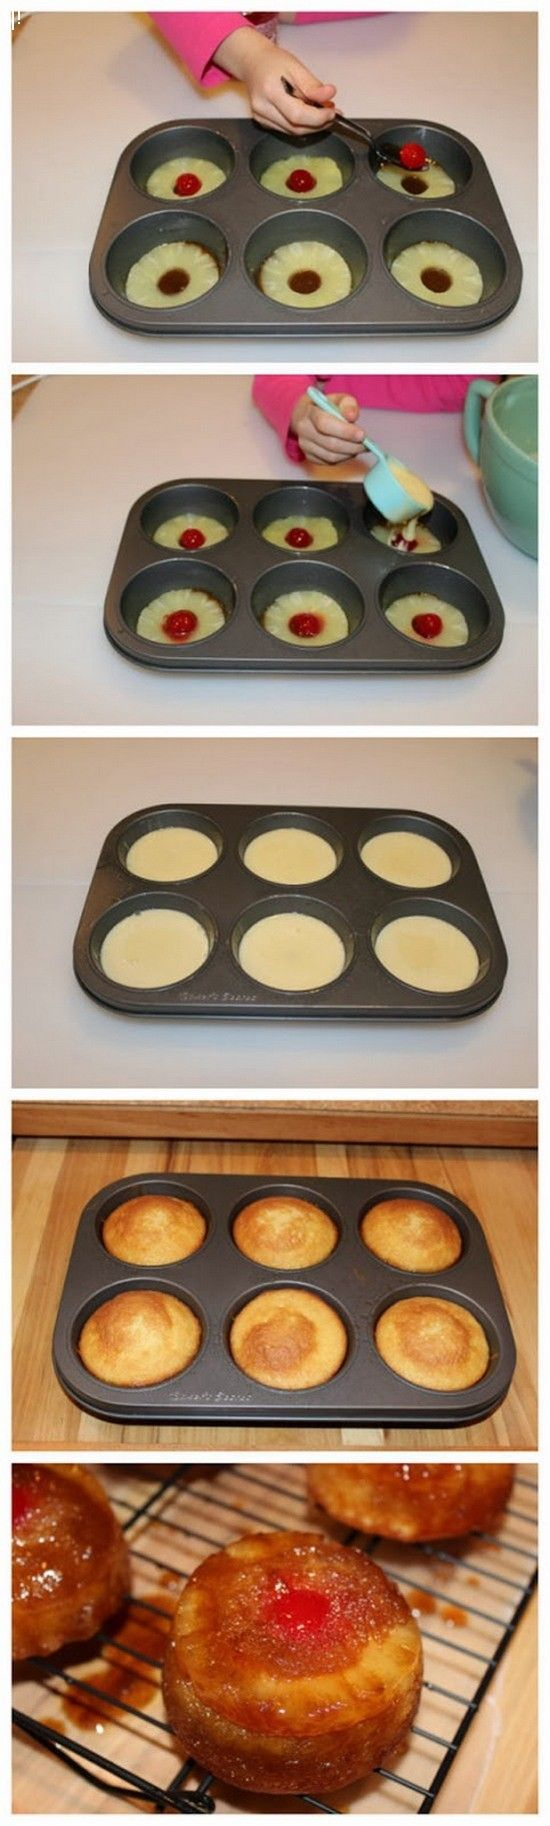 1000+ images about cooking classes on Pinterest | Caramel pudding ...